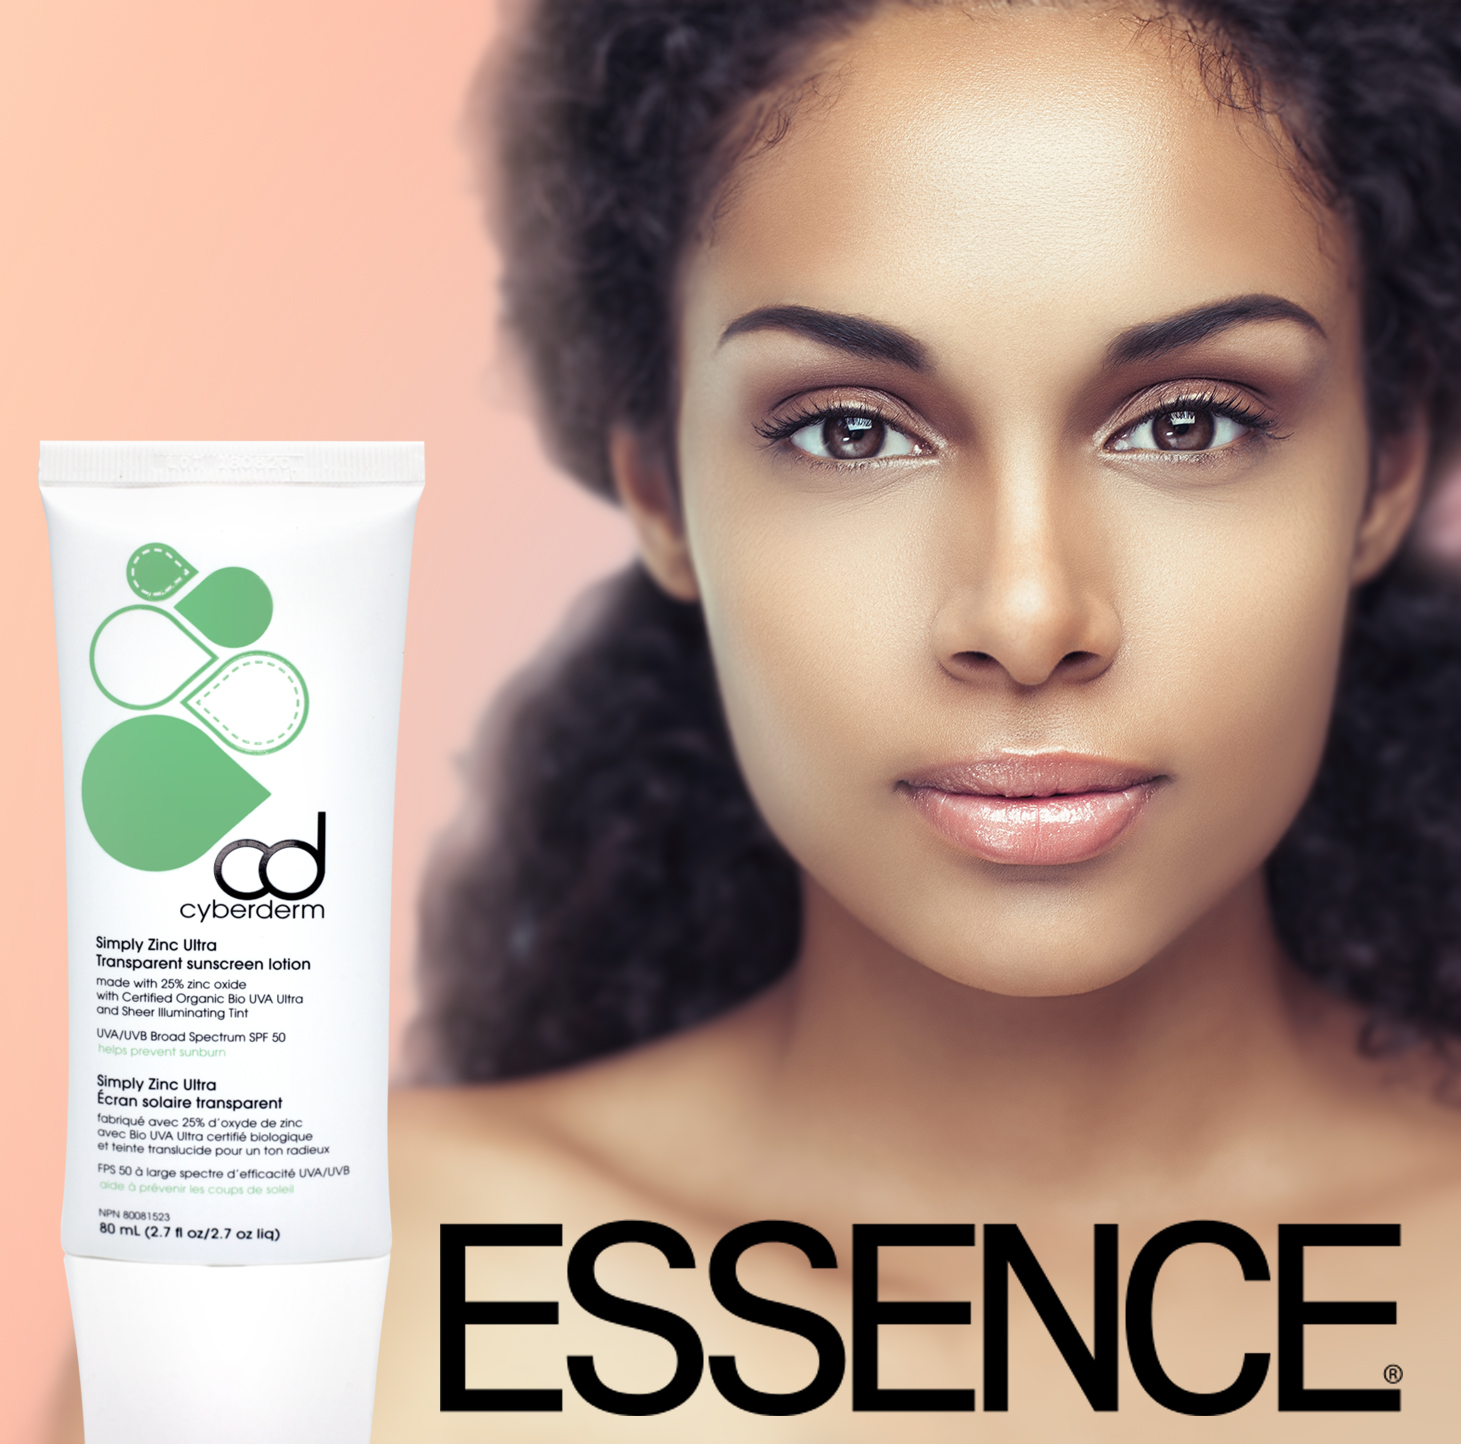 The Team At Essence Falls In Love With Our Sunscreens. - Our CyberDERM sunscreens have become a cult favourite among celebrities, so the ladies at Essence Magazine tested them to see how it performed on a range of darker skin tones. Simply put, they all loved it and went a step further by adding our Every Morning Sun Whip to their morning skincare regimen. A big thanks to the ladies at Essence for putting us to the test and showcasing how great our sunscreens perform on a wide range of skin tones. We appreciate you!